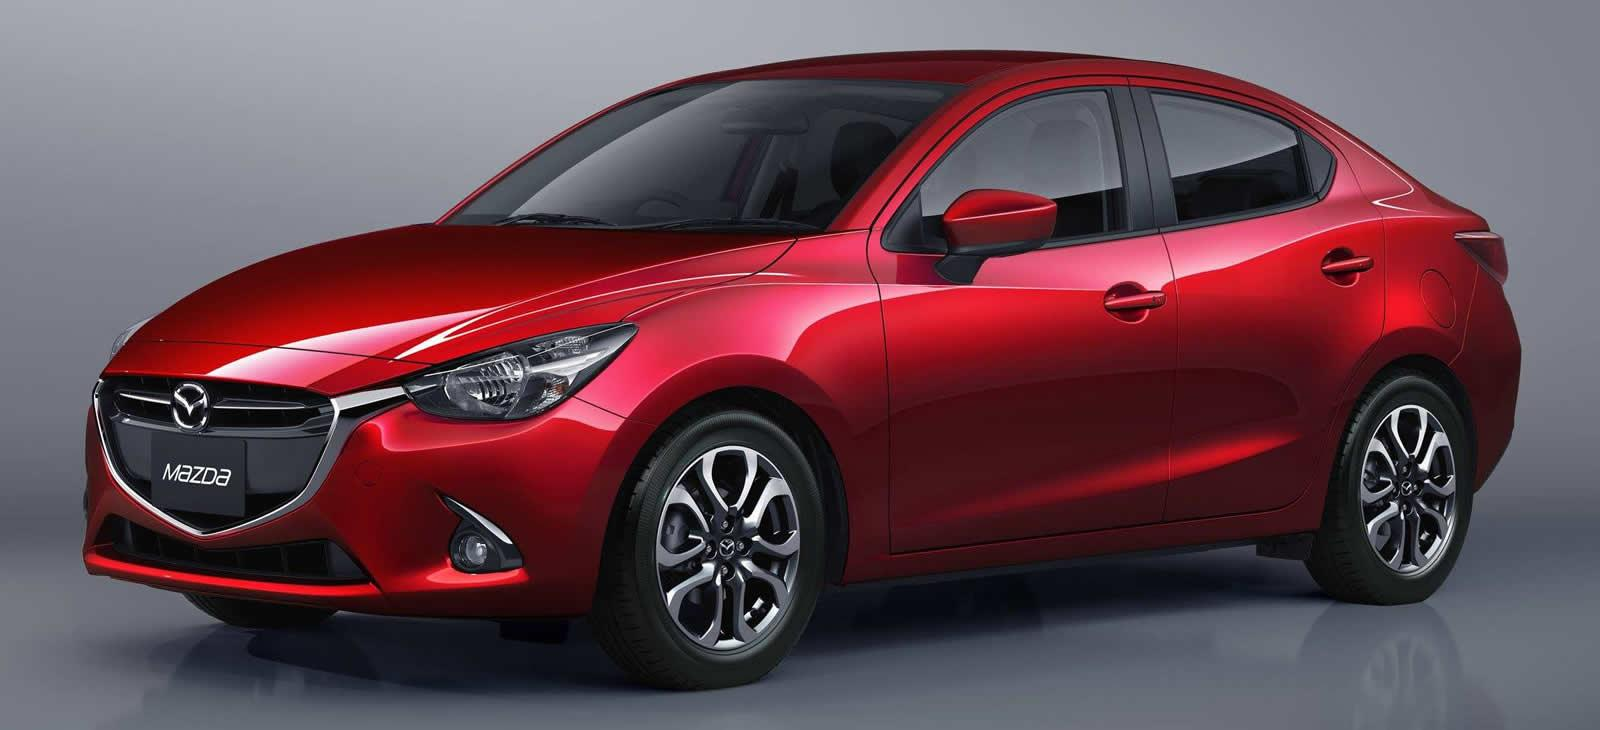 all new 2015 mazda2 sedan revealed ahead of thailand debut autoevolution. Black Bedroom Furniture Sets. Home Design Ideas